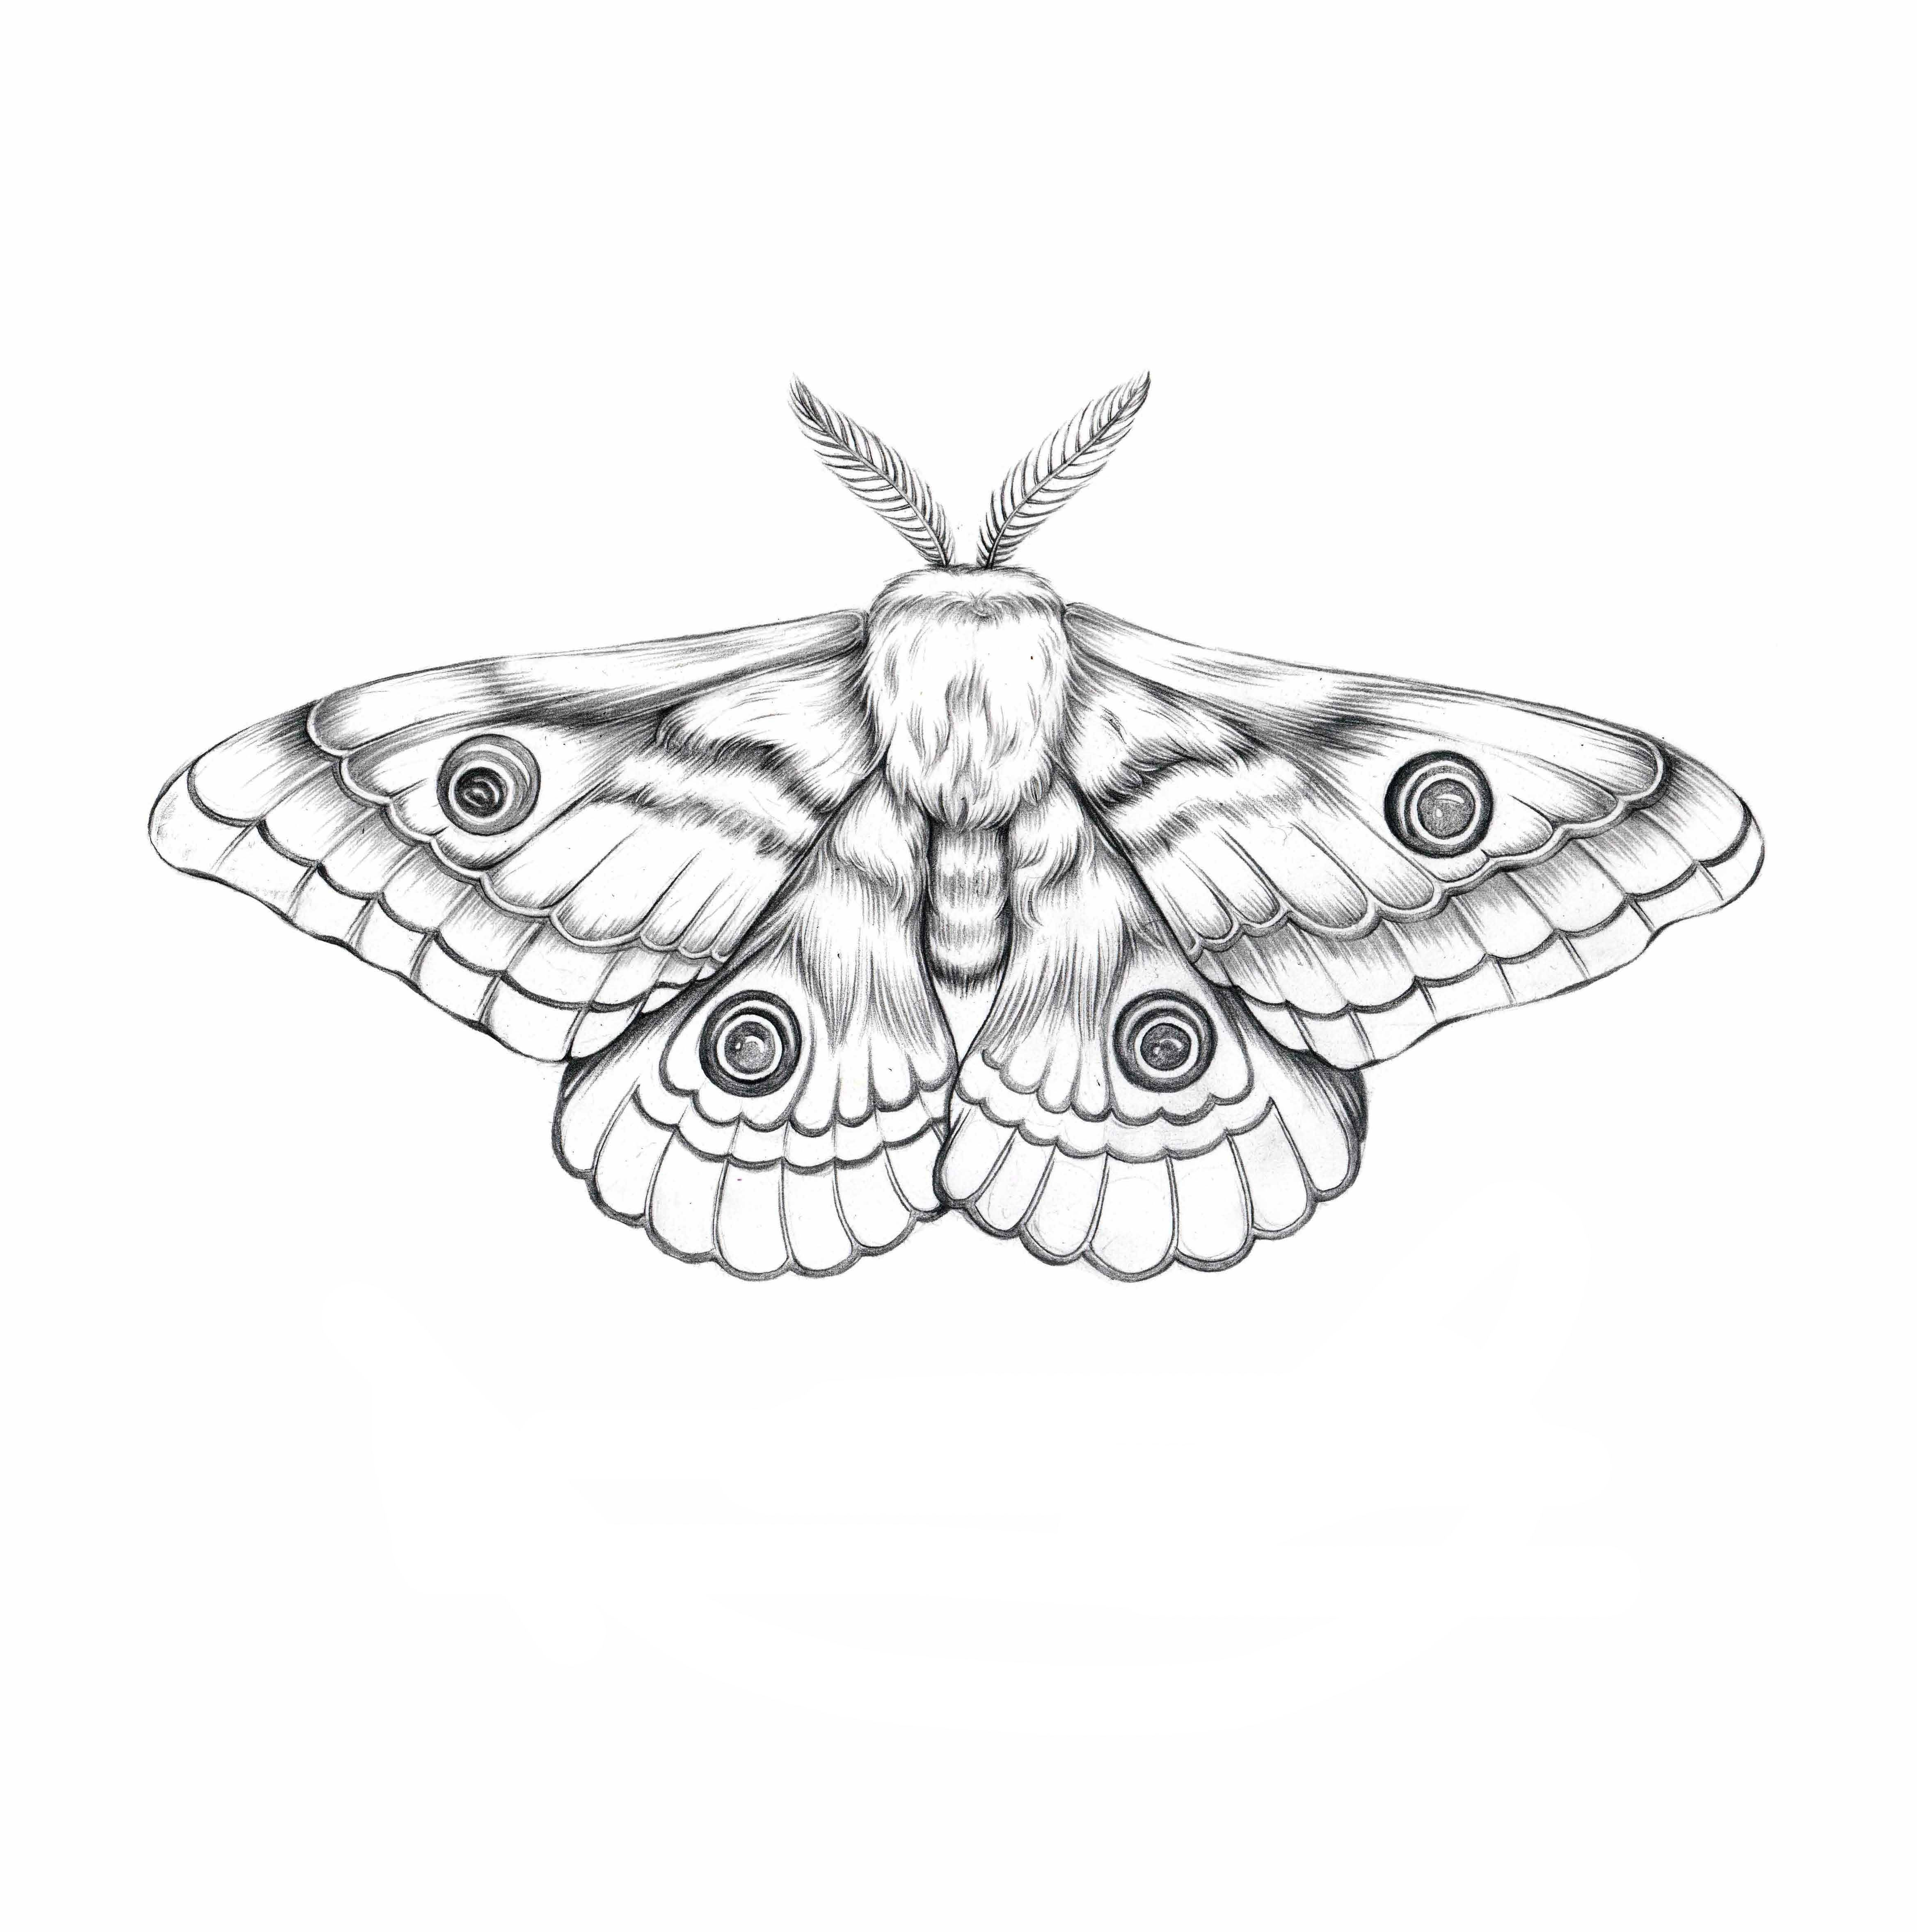 Illustration Tattoos: Moth Illustration, Moth Tattoo, Tattoos